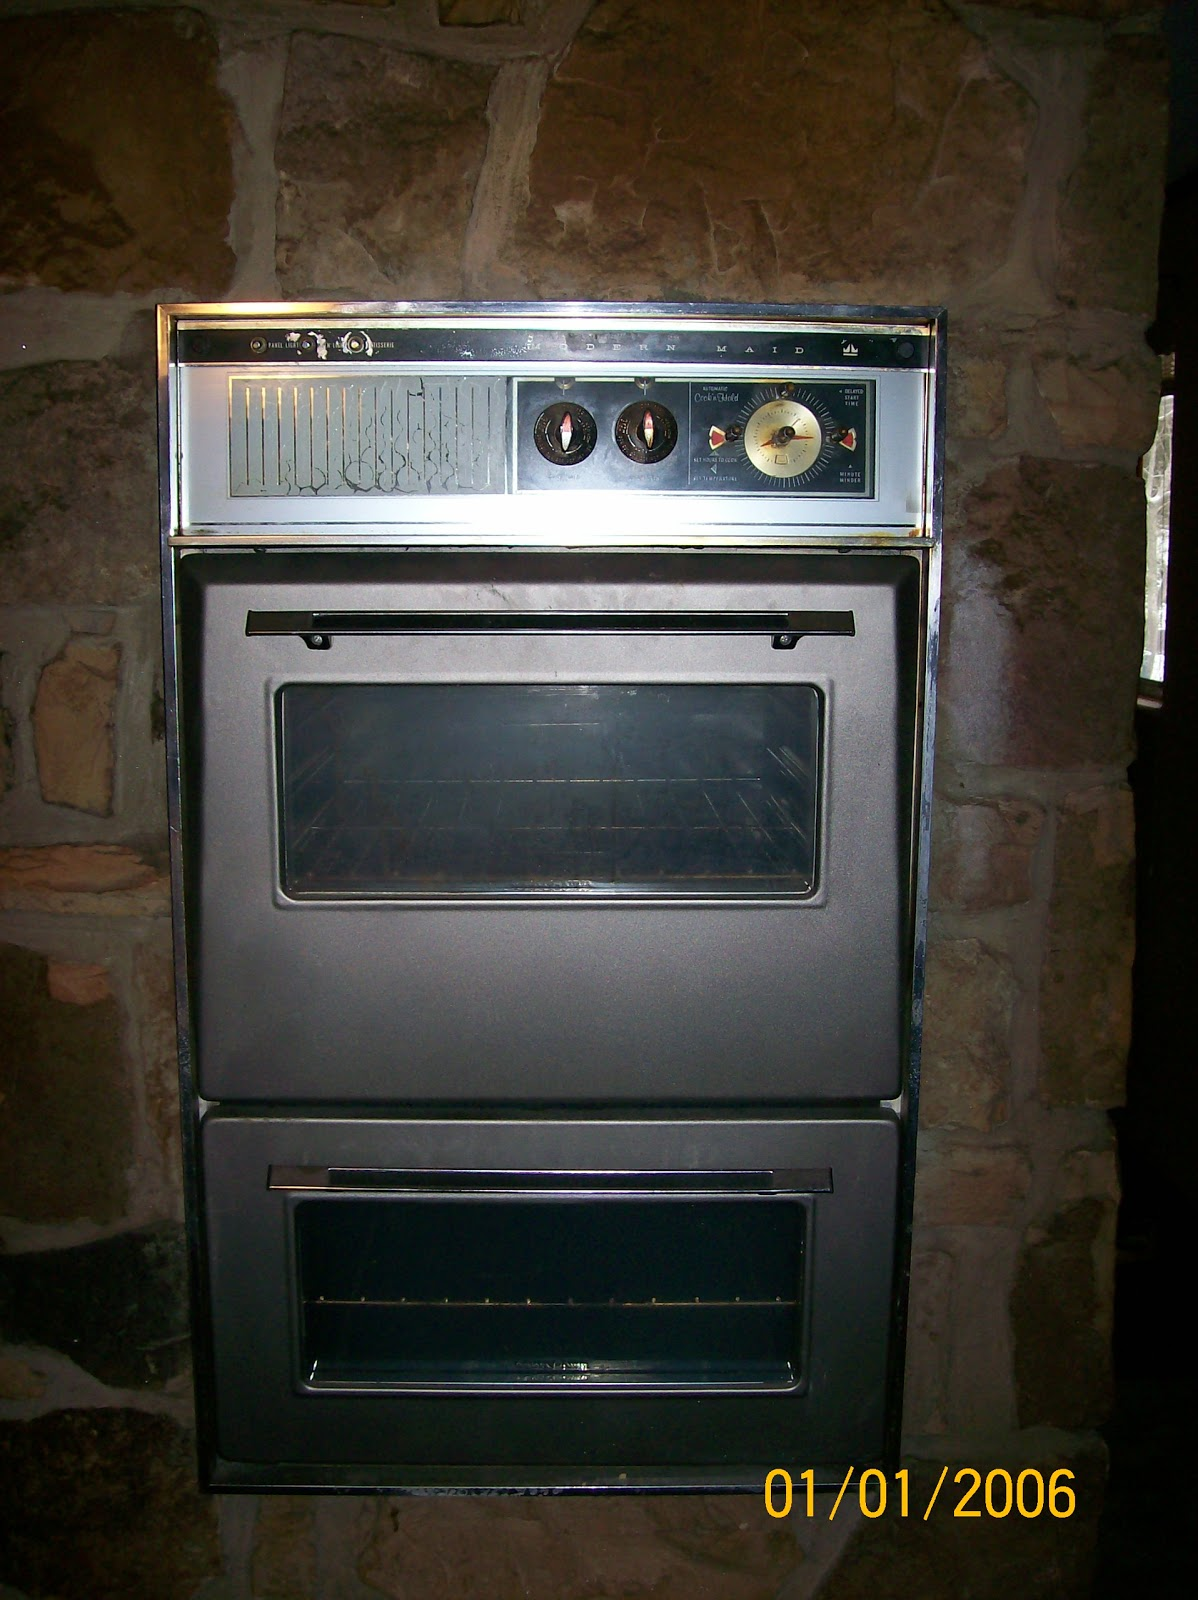 Whirlpool Dishwasher Quiet Partner 1 Filter also Modern Maid Double Wall Oven together with Electric Oven Thermostat Wiring Diagram moreover Samsung Dryer Wiring Diagram moreover Switch Wiring Diagram. on kenmore oven door assembly